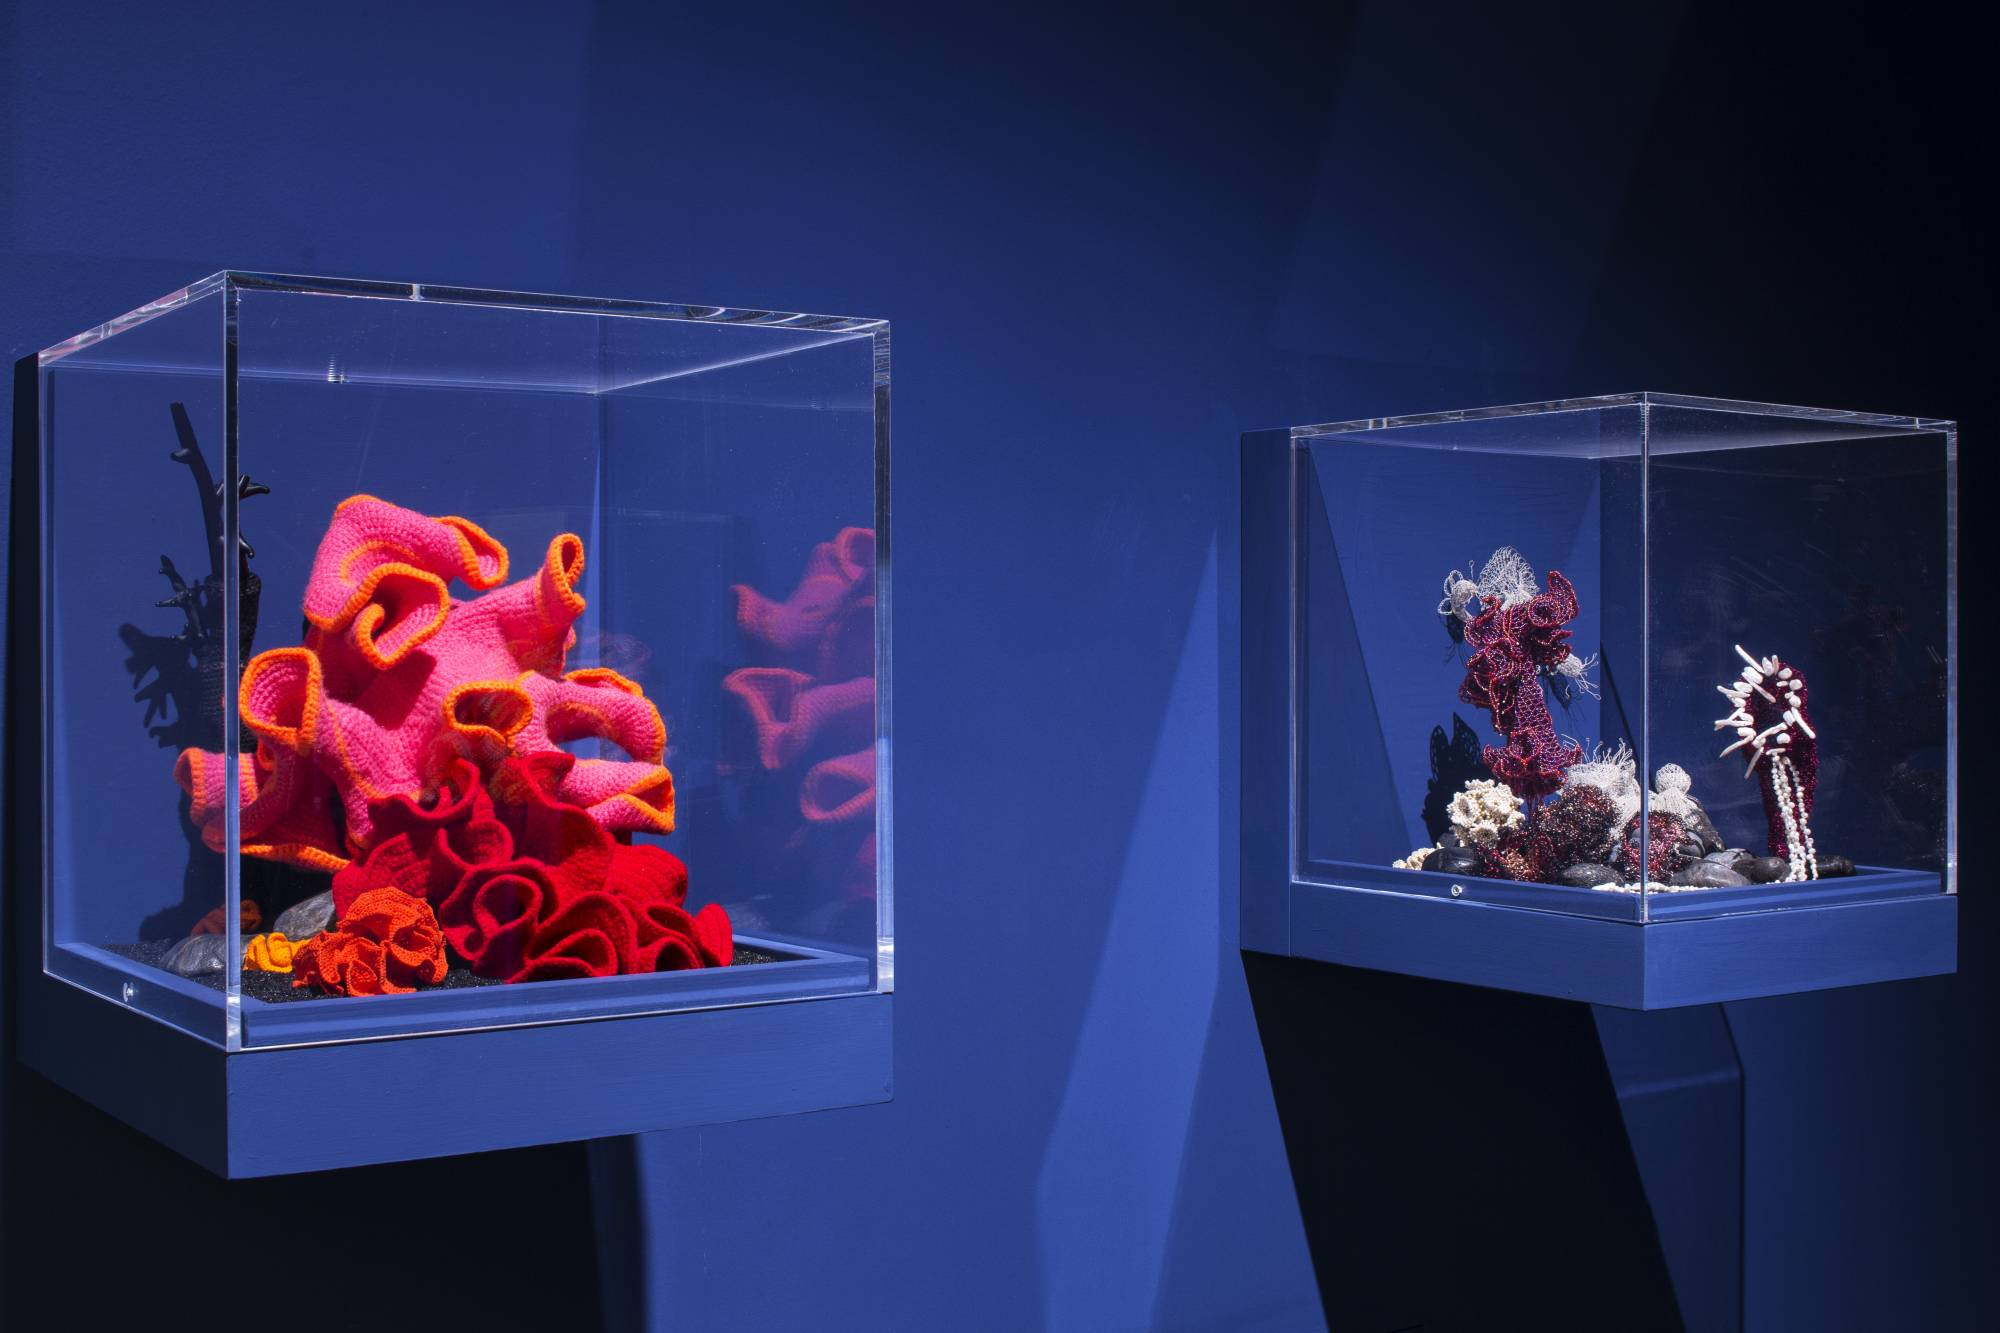 Two reef sculptures in glass vitrines in gallery with striking blue background